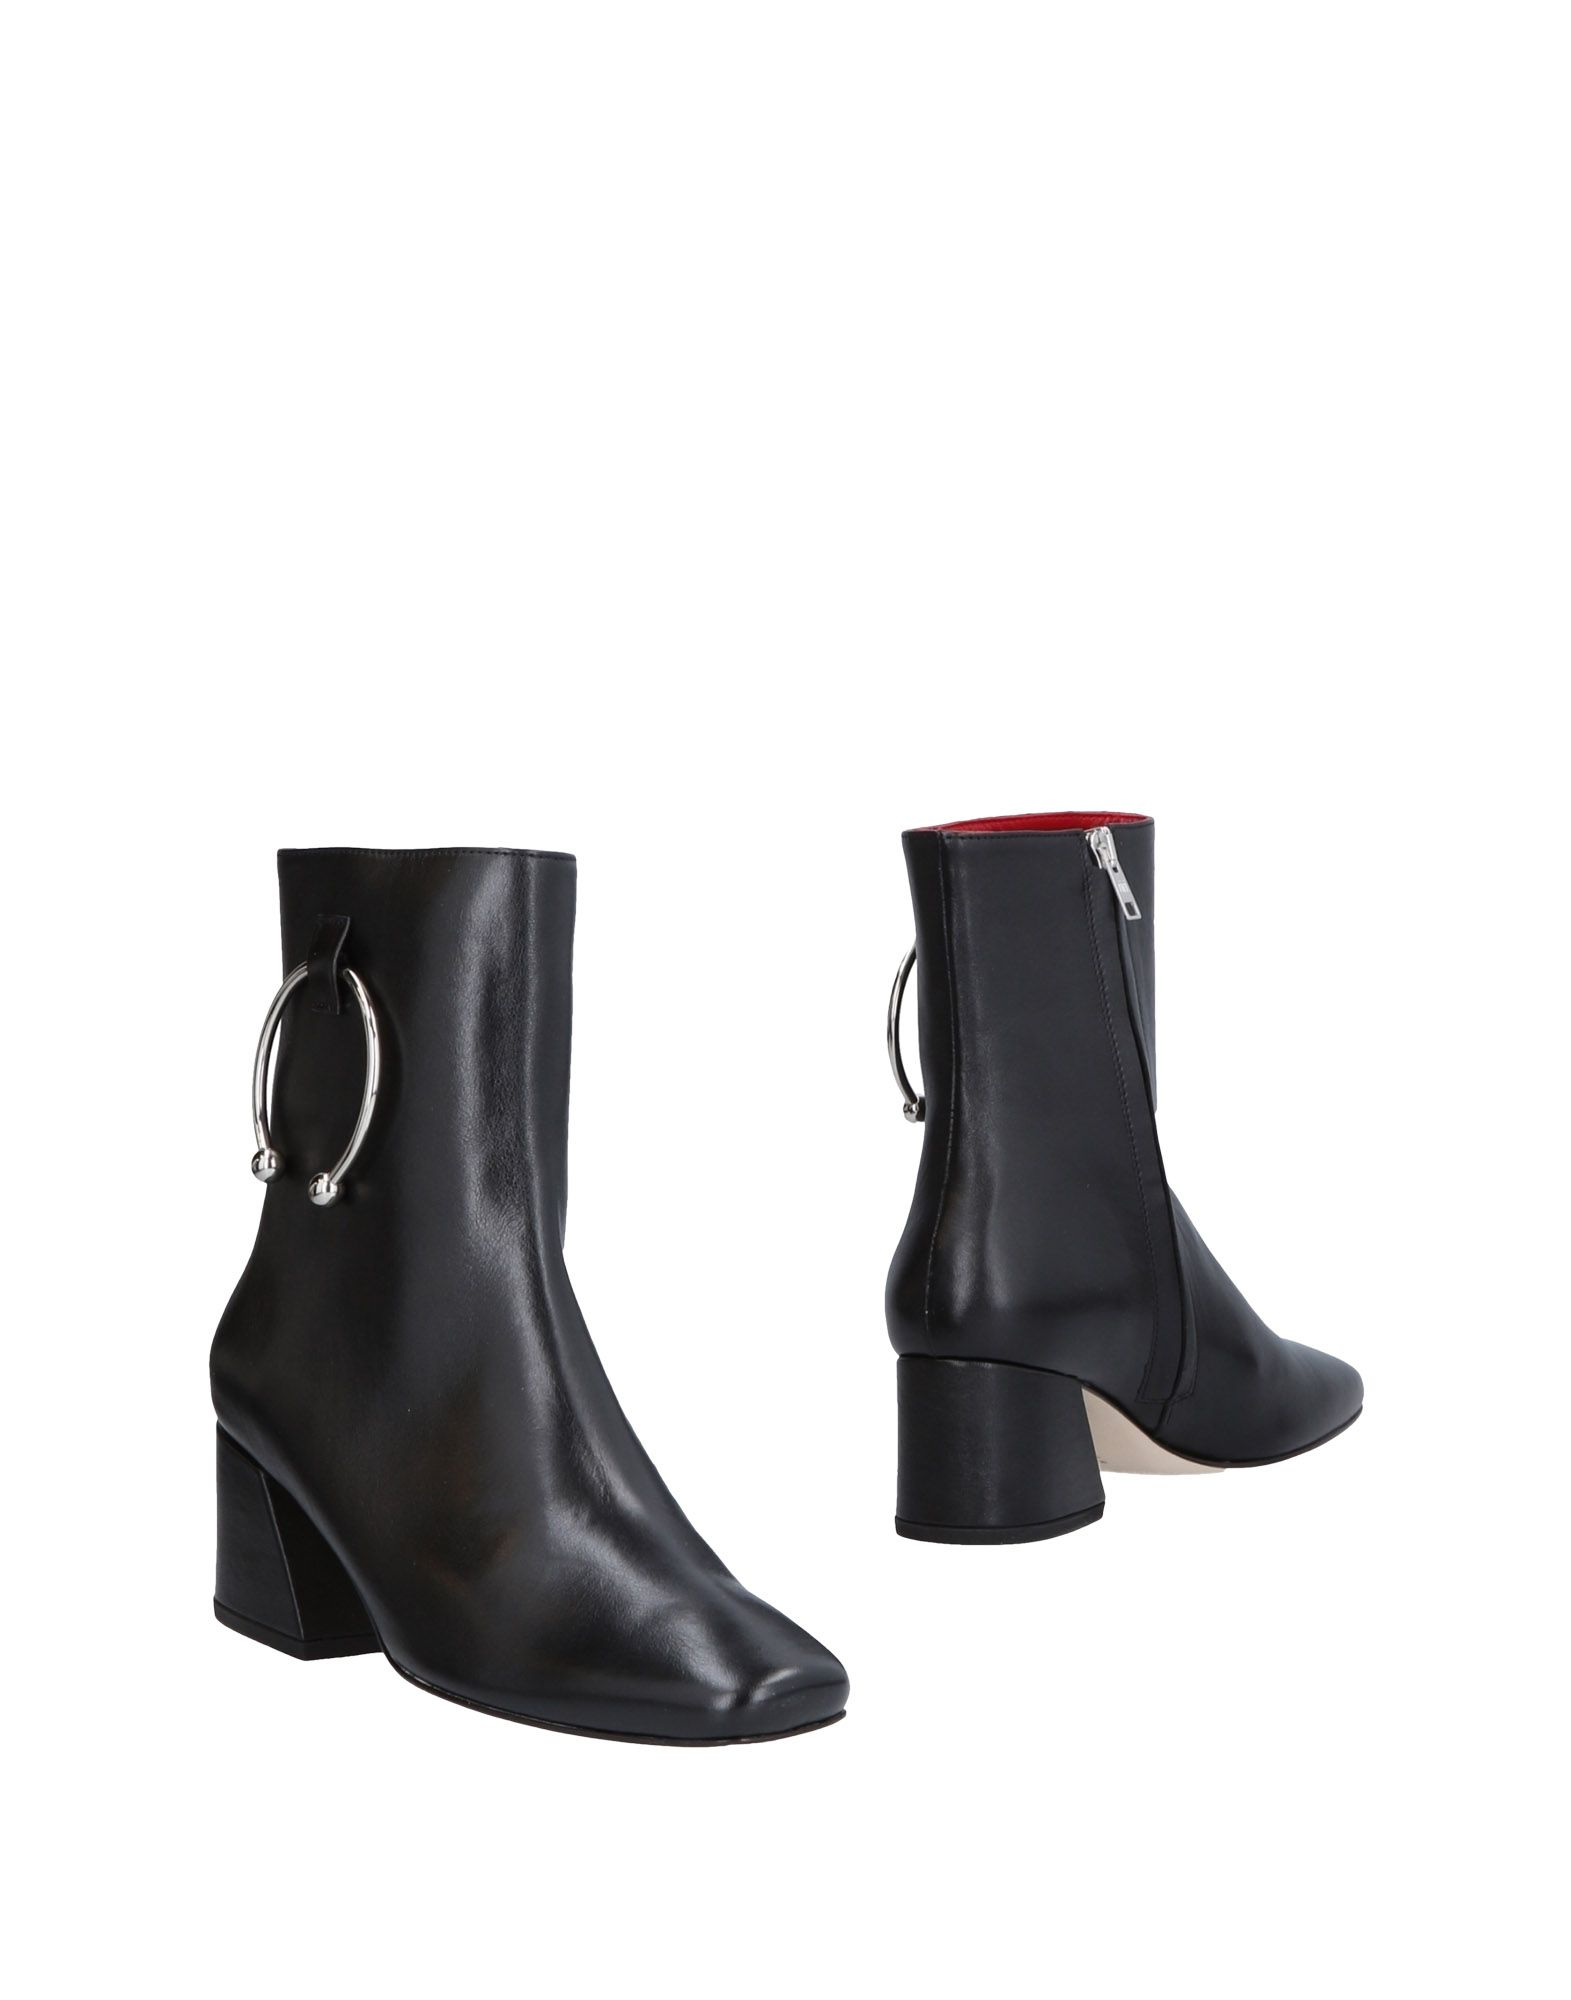 Bottine Dorateymur Femme - Bottines Dorateymur sur